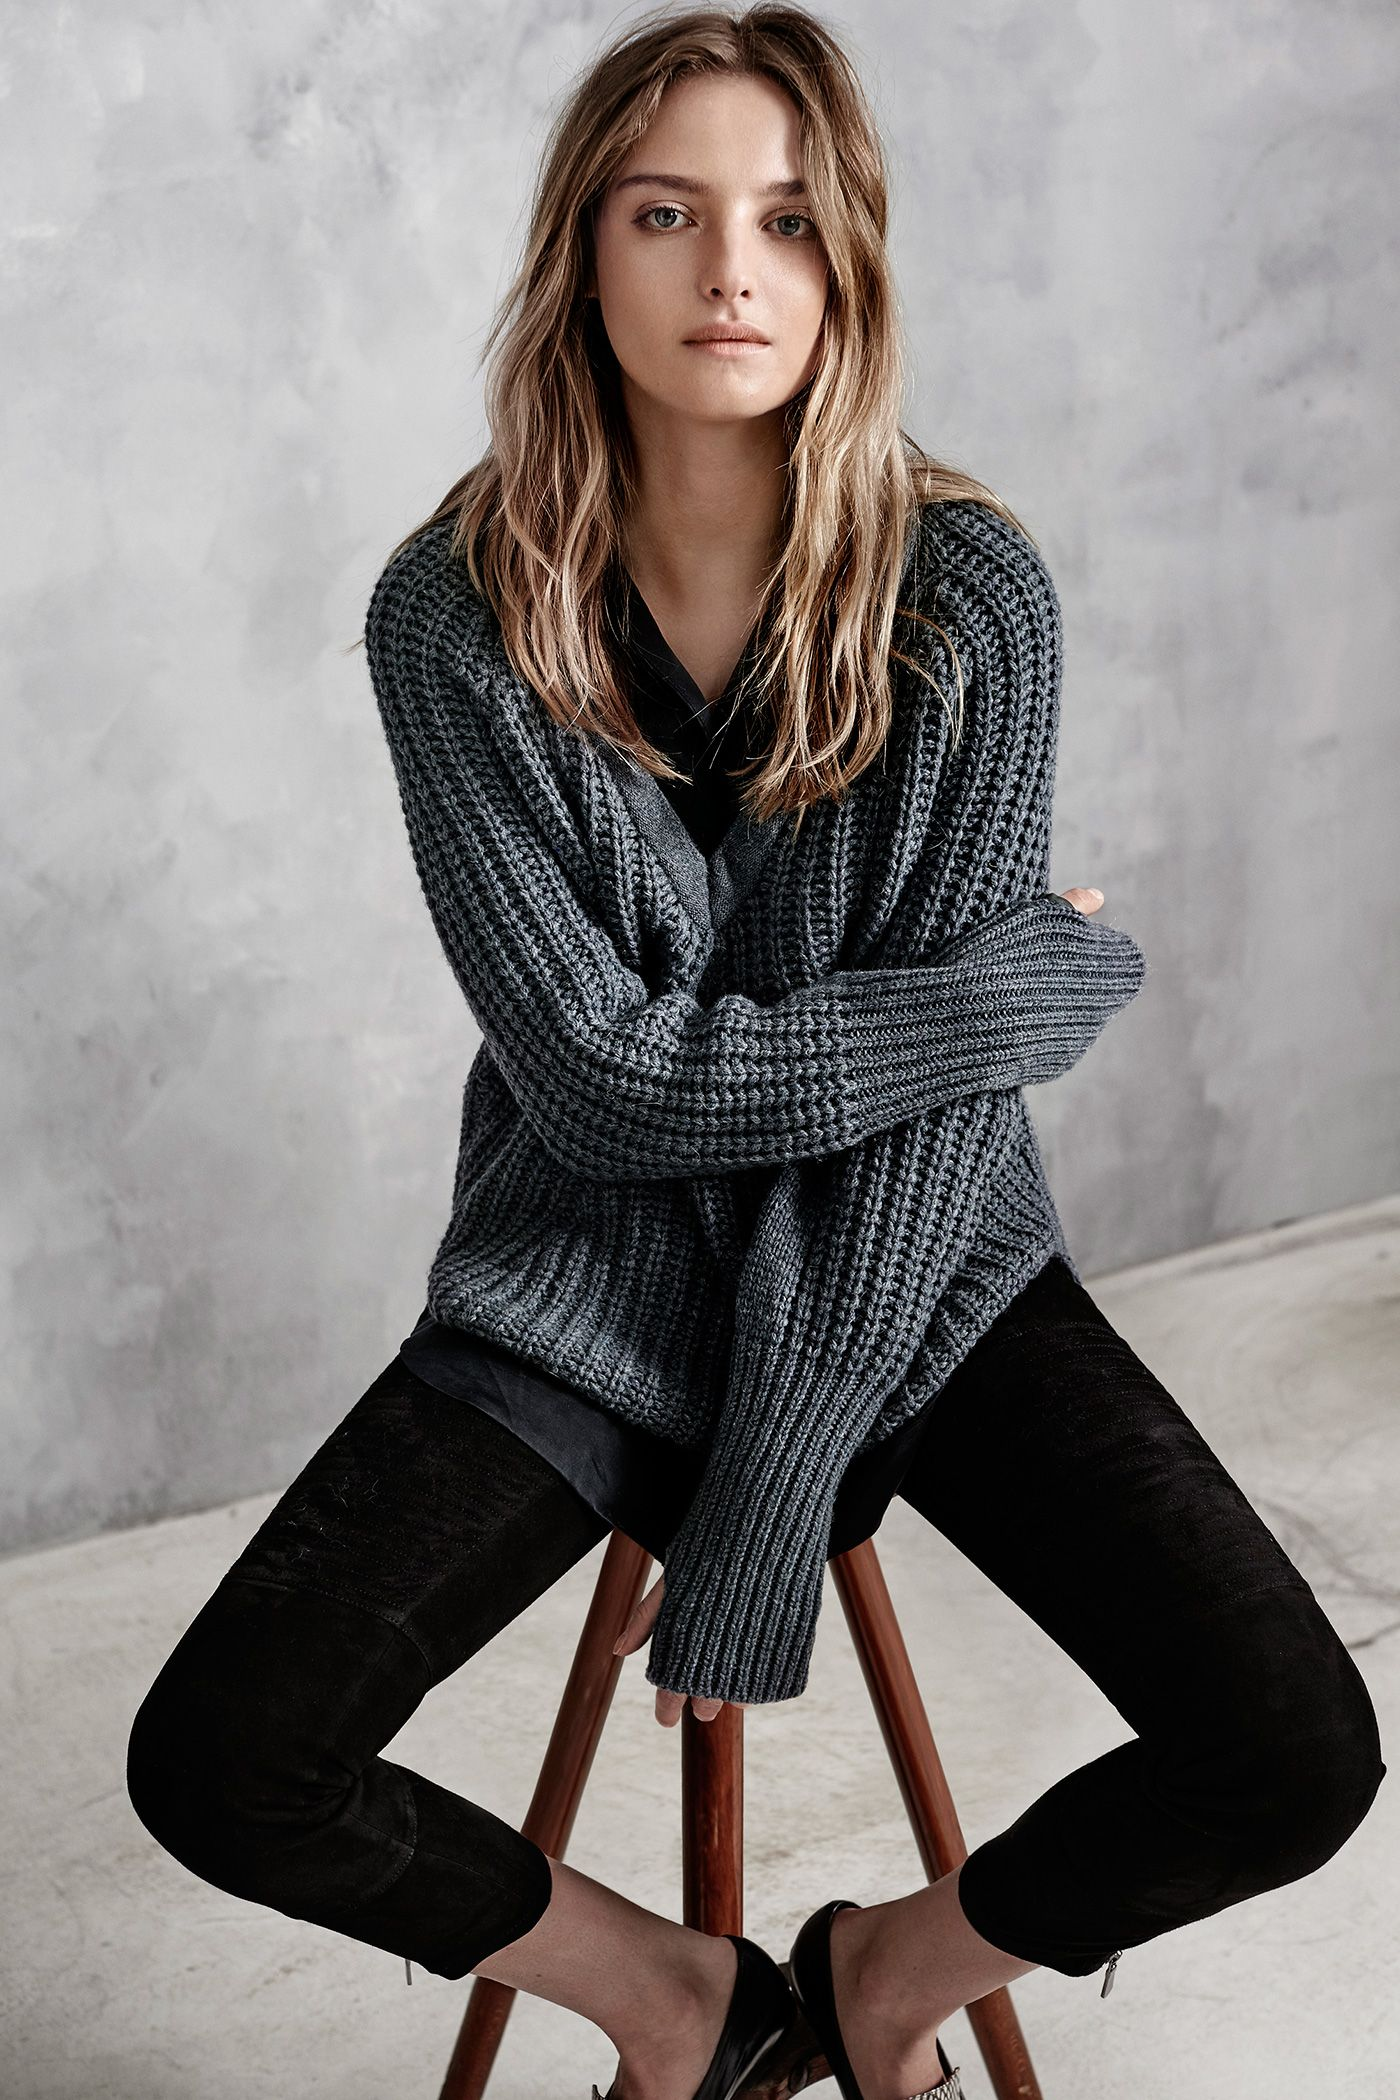 DALE KNIT, KALI TOP, VICY SUEDE JEAN | Clothing Style I like ...